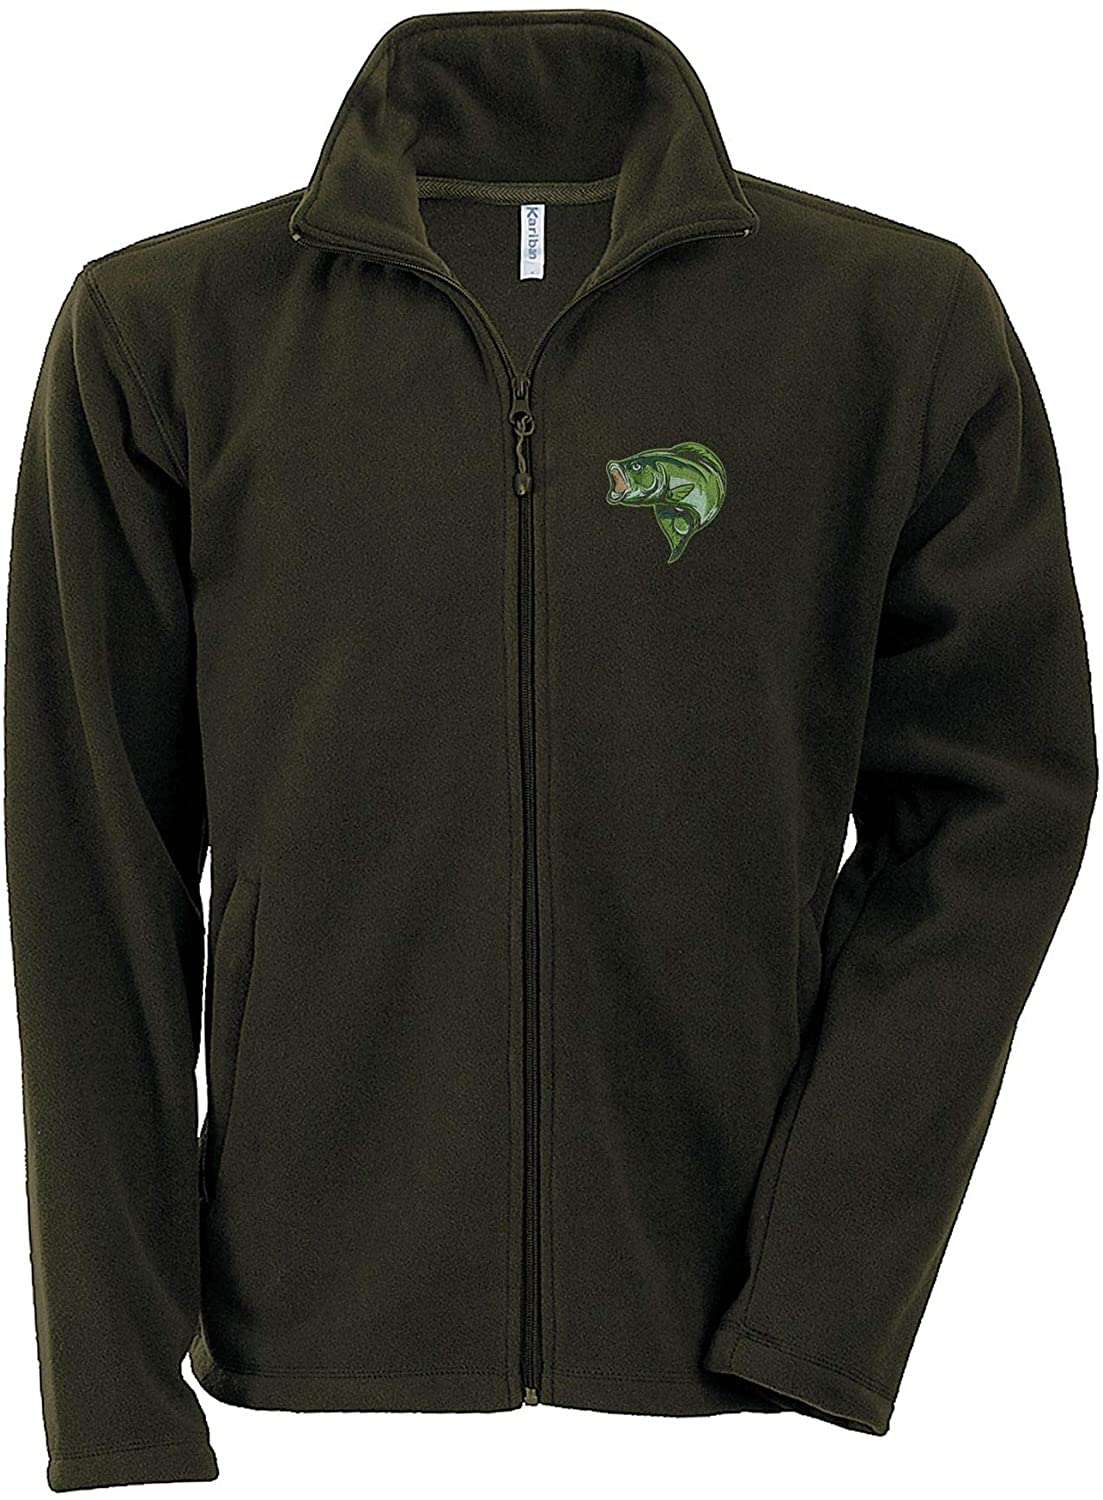 Bass Fishing Fleece Jacket with Embroidered Fish Fisherman Clothing Gift Ideas